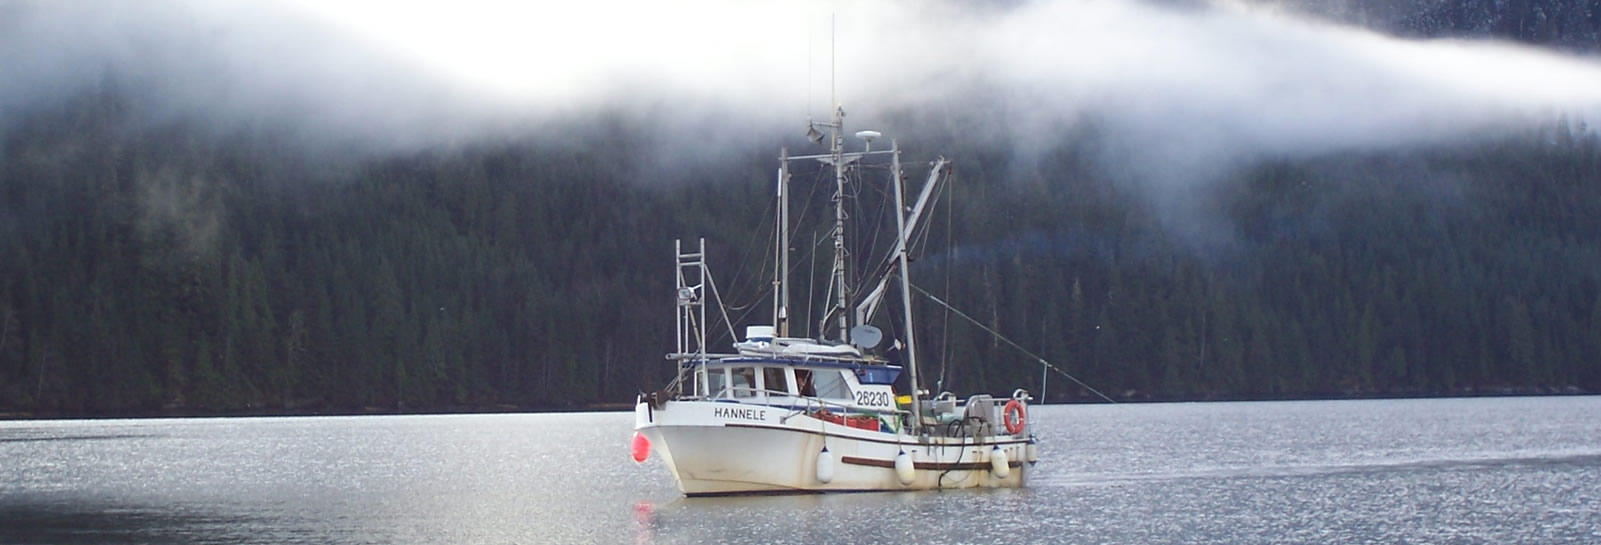 Commercial Fisherman's Boat